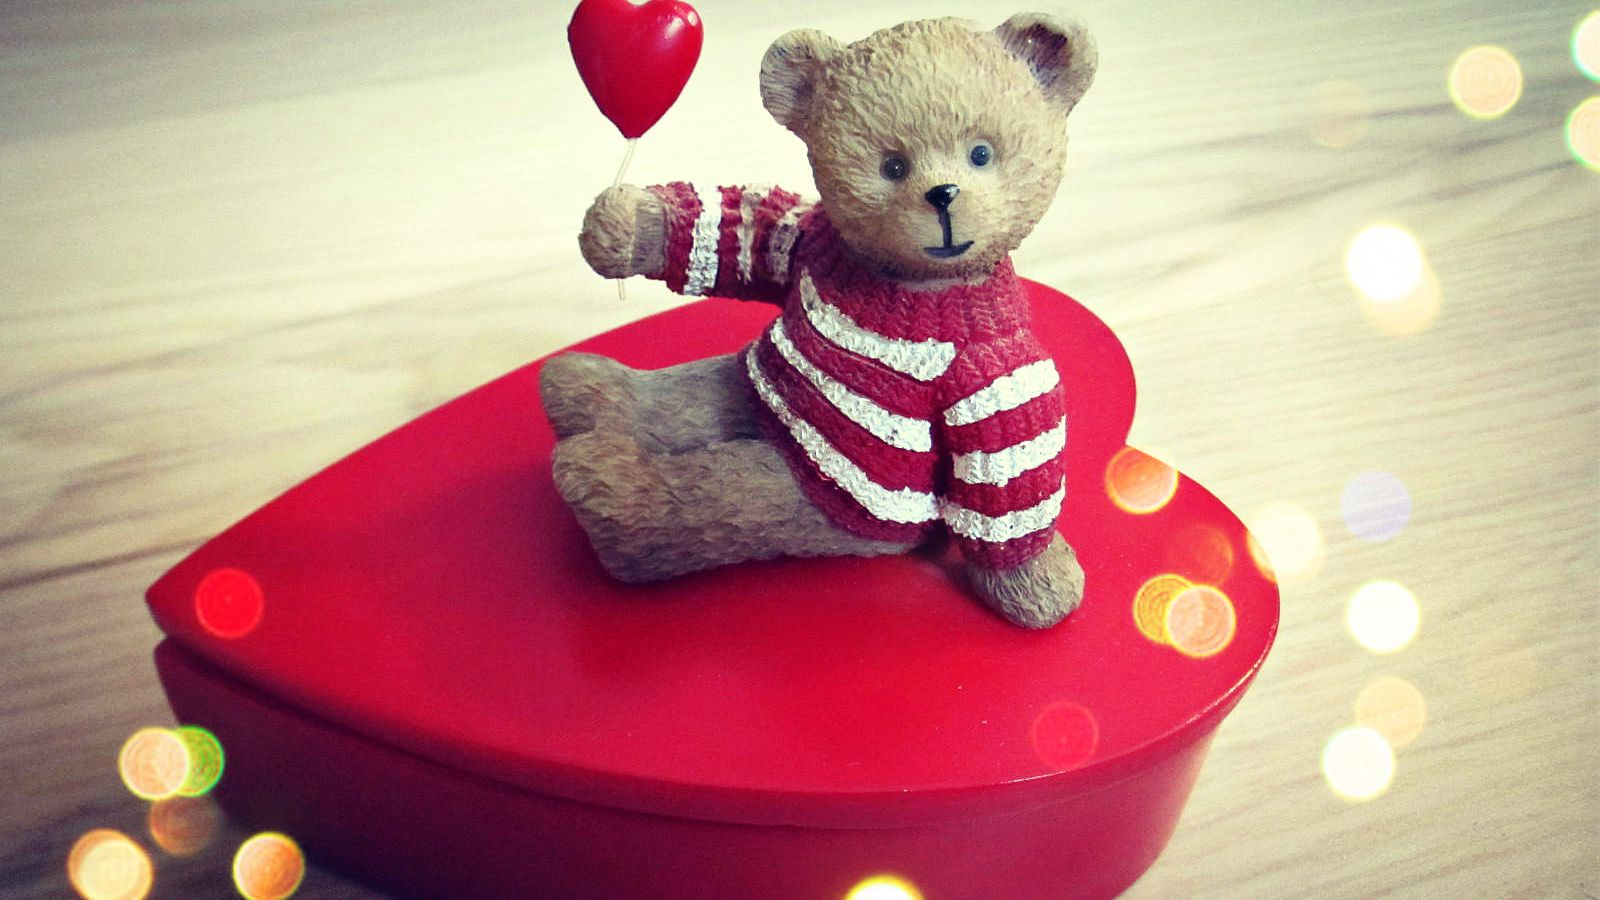 download tatty teddy wallpapers to your cell phone cute flower